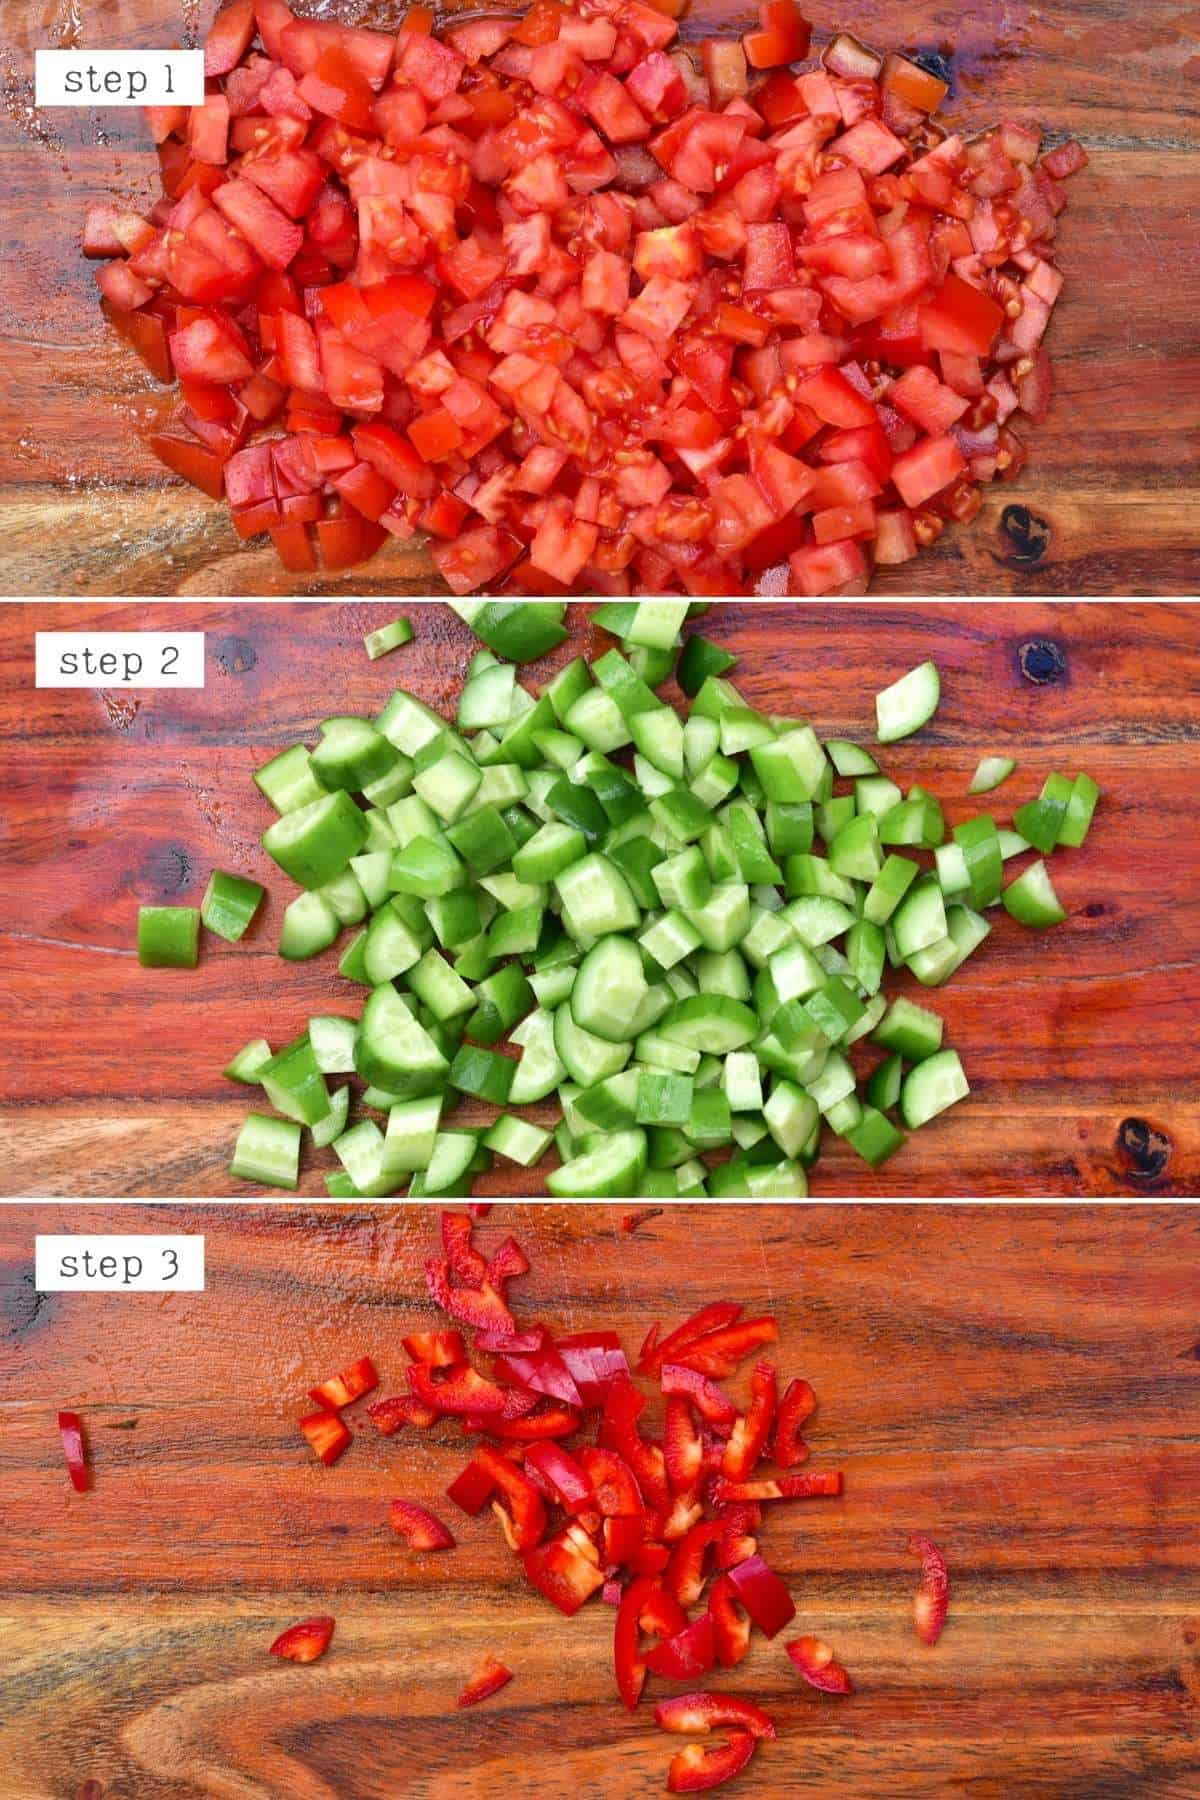 Steps for chopping ingredients